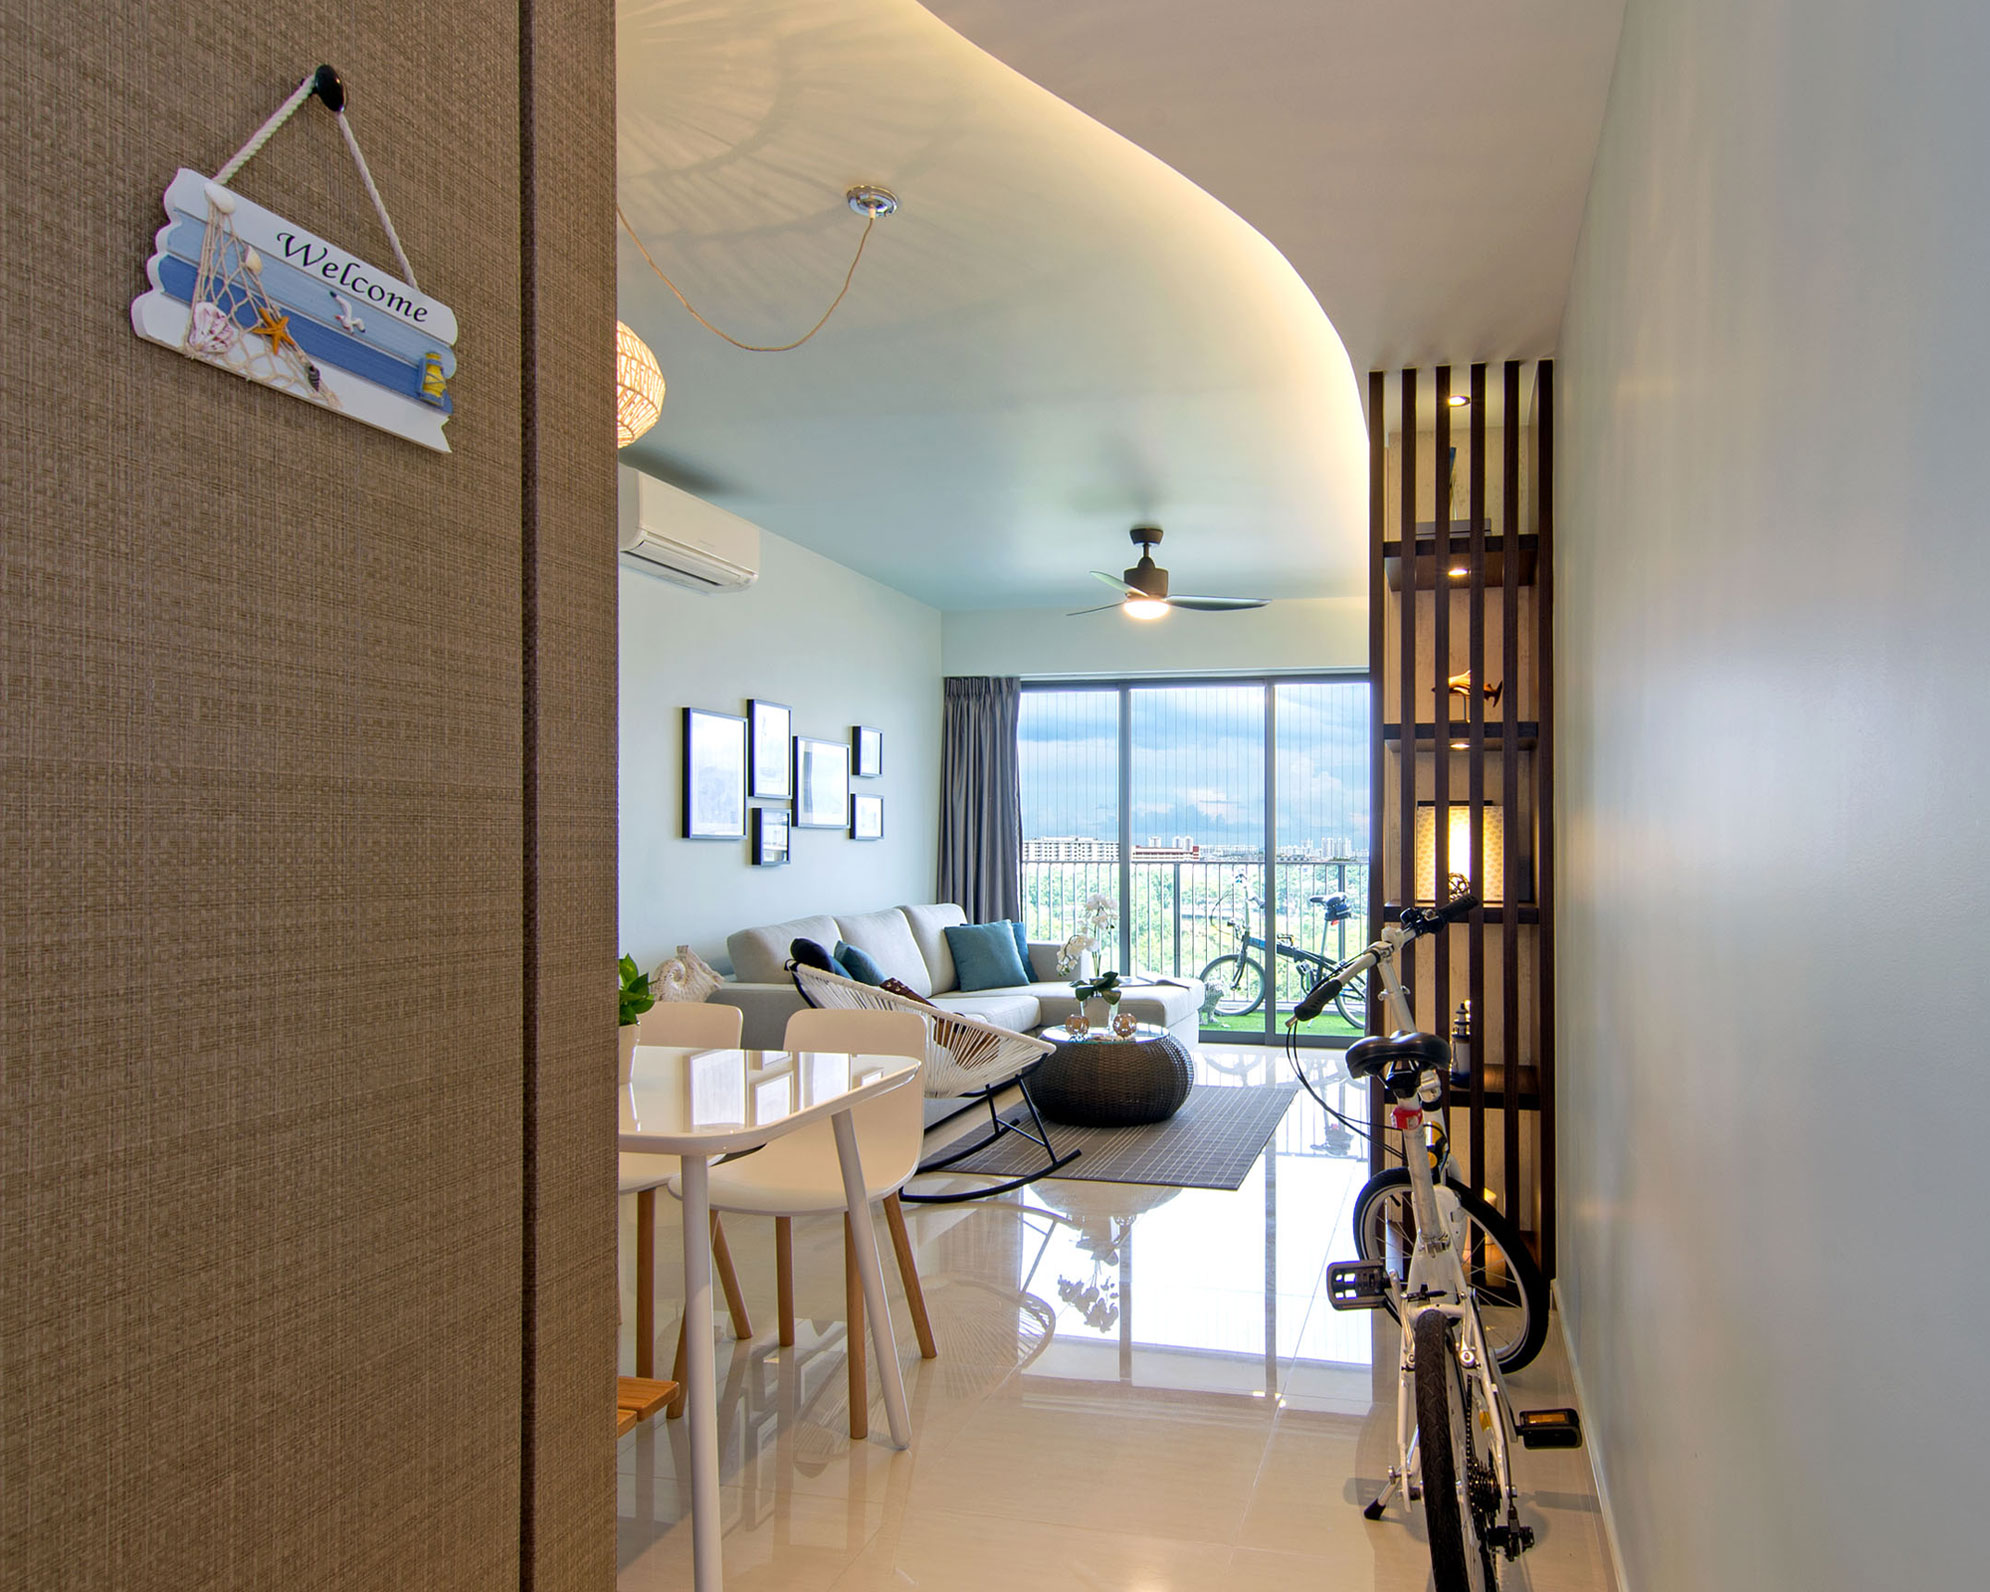 Beach house urban apartment in Singapore by Vievva Designers-02